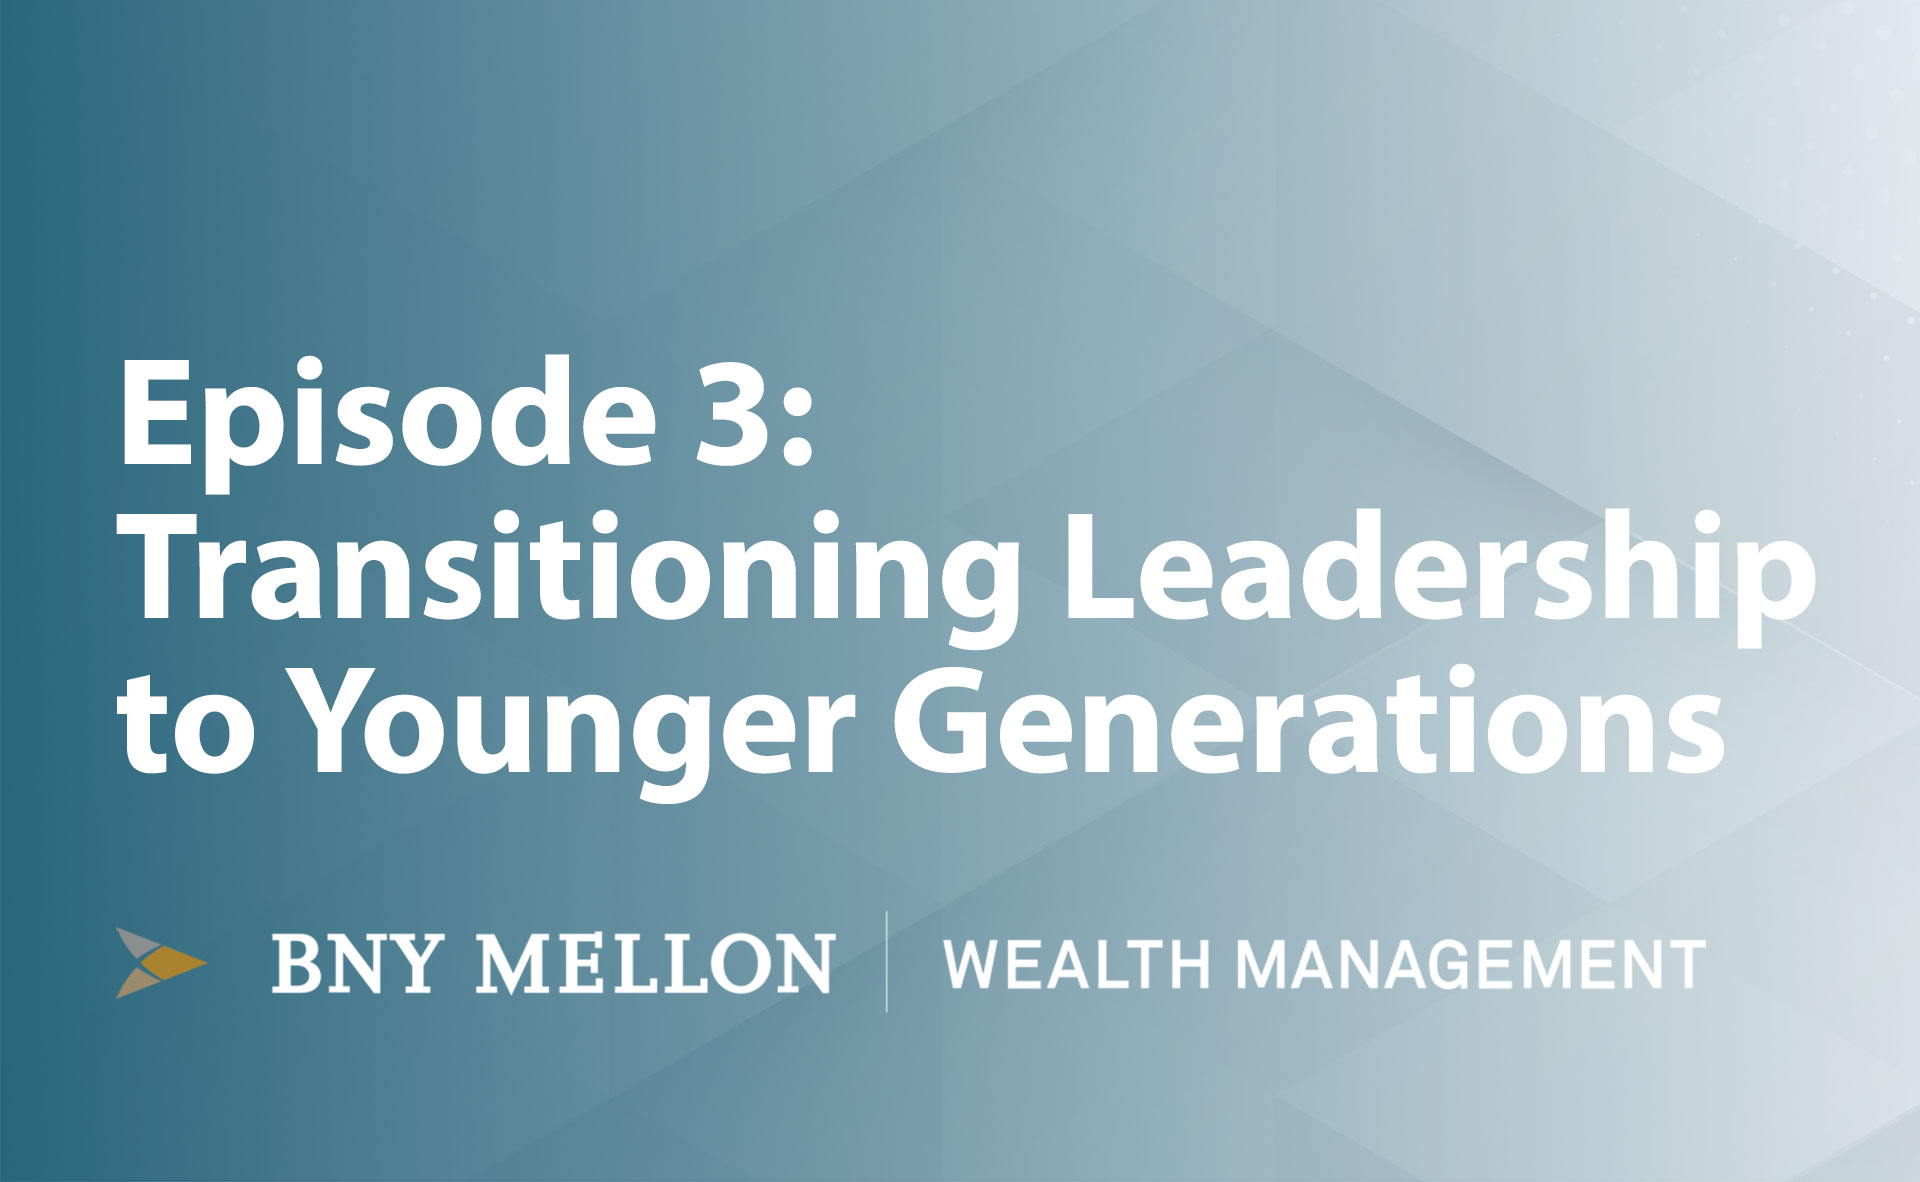 Video:Transitioning Leadership to Younger Generations